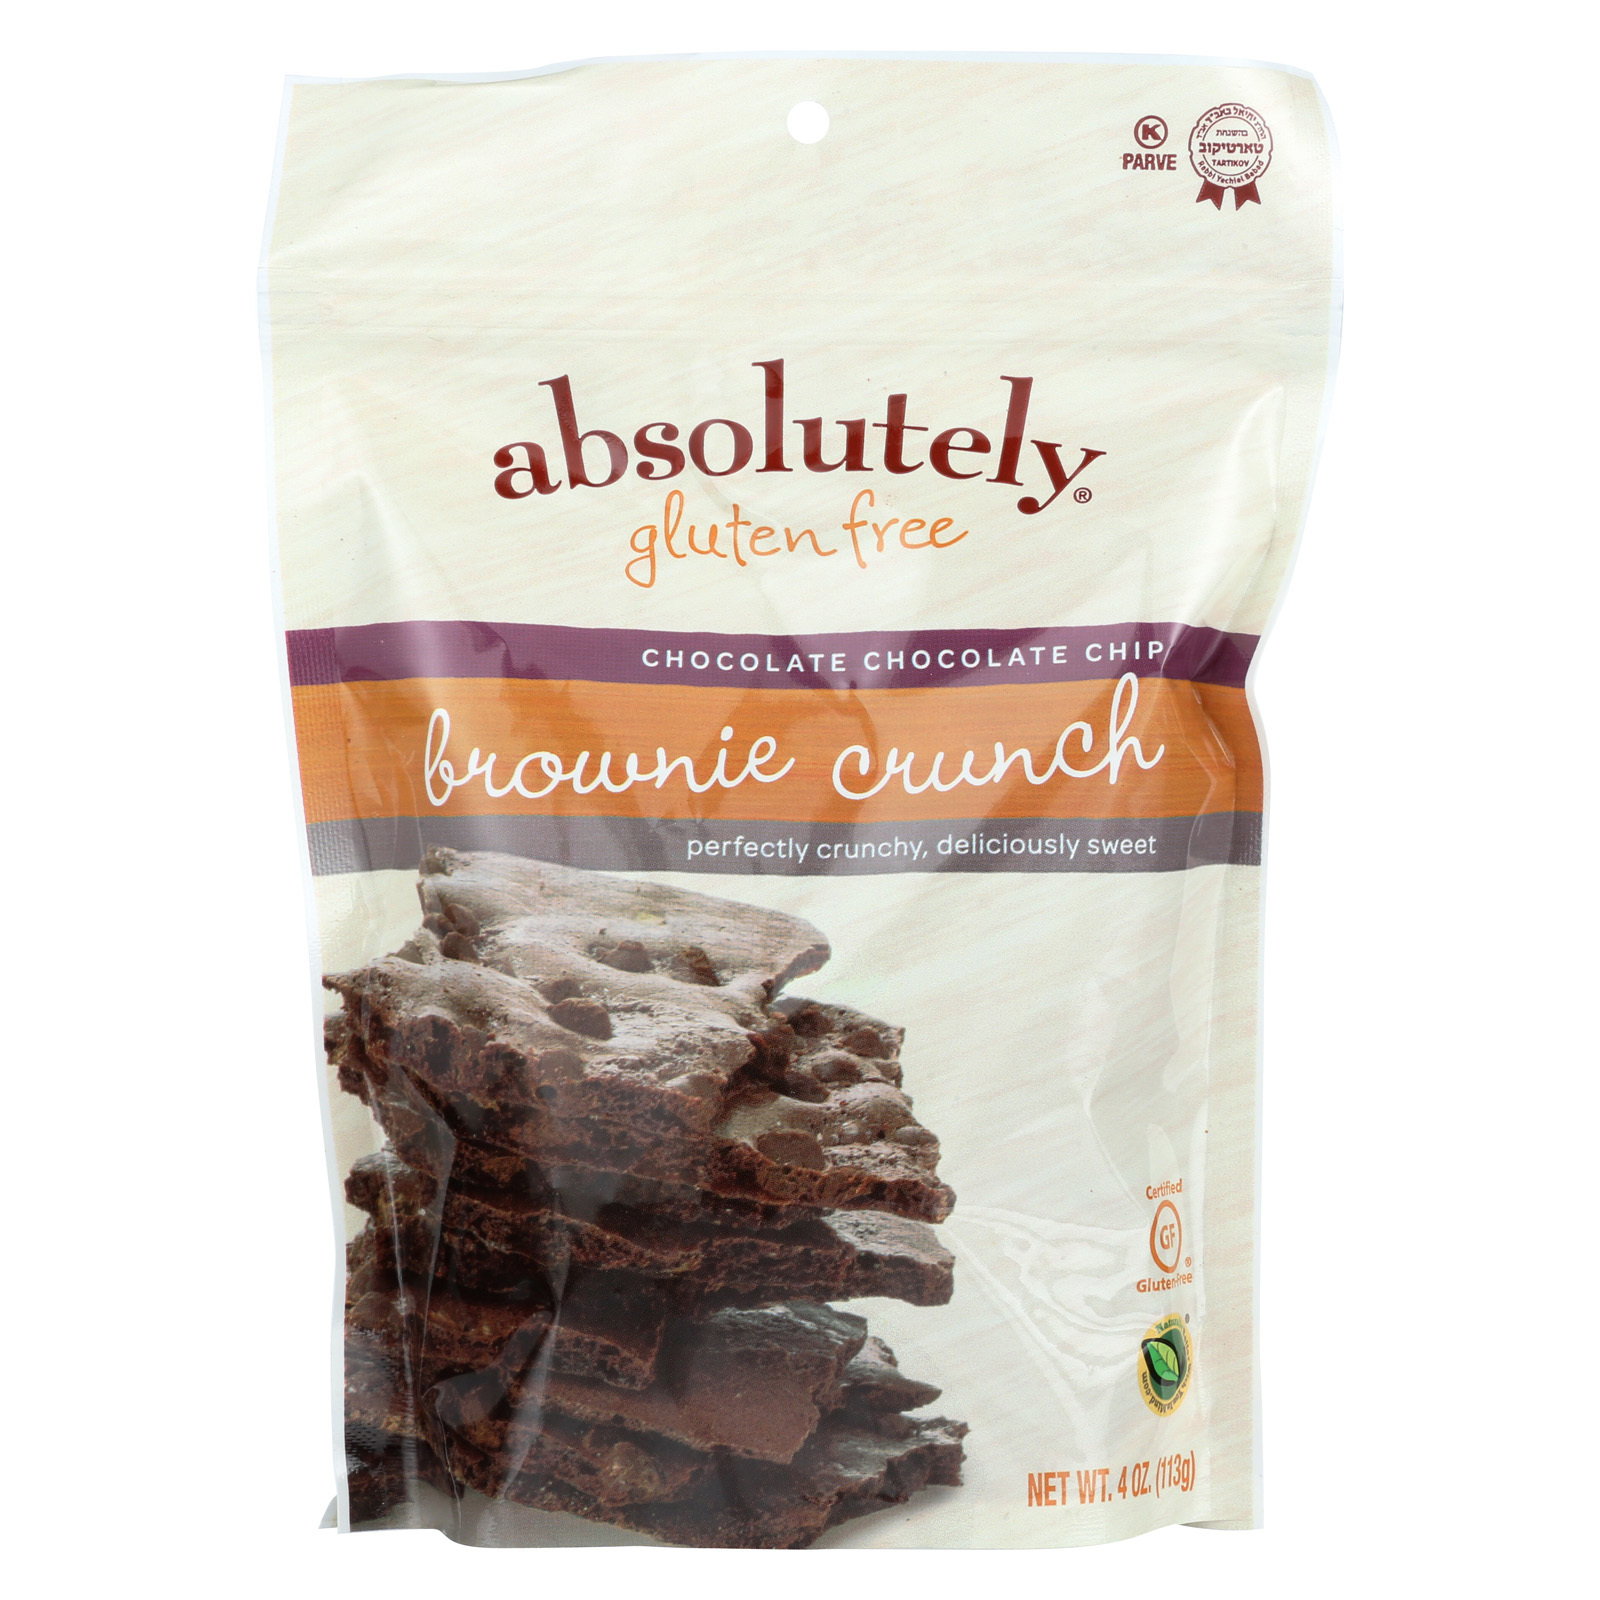 Absolutely Gluten Free Brownie Crunch - Chocolate Chip - Case of 6 - 4 oz.